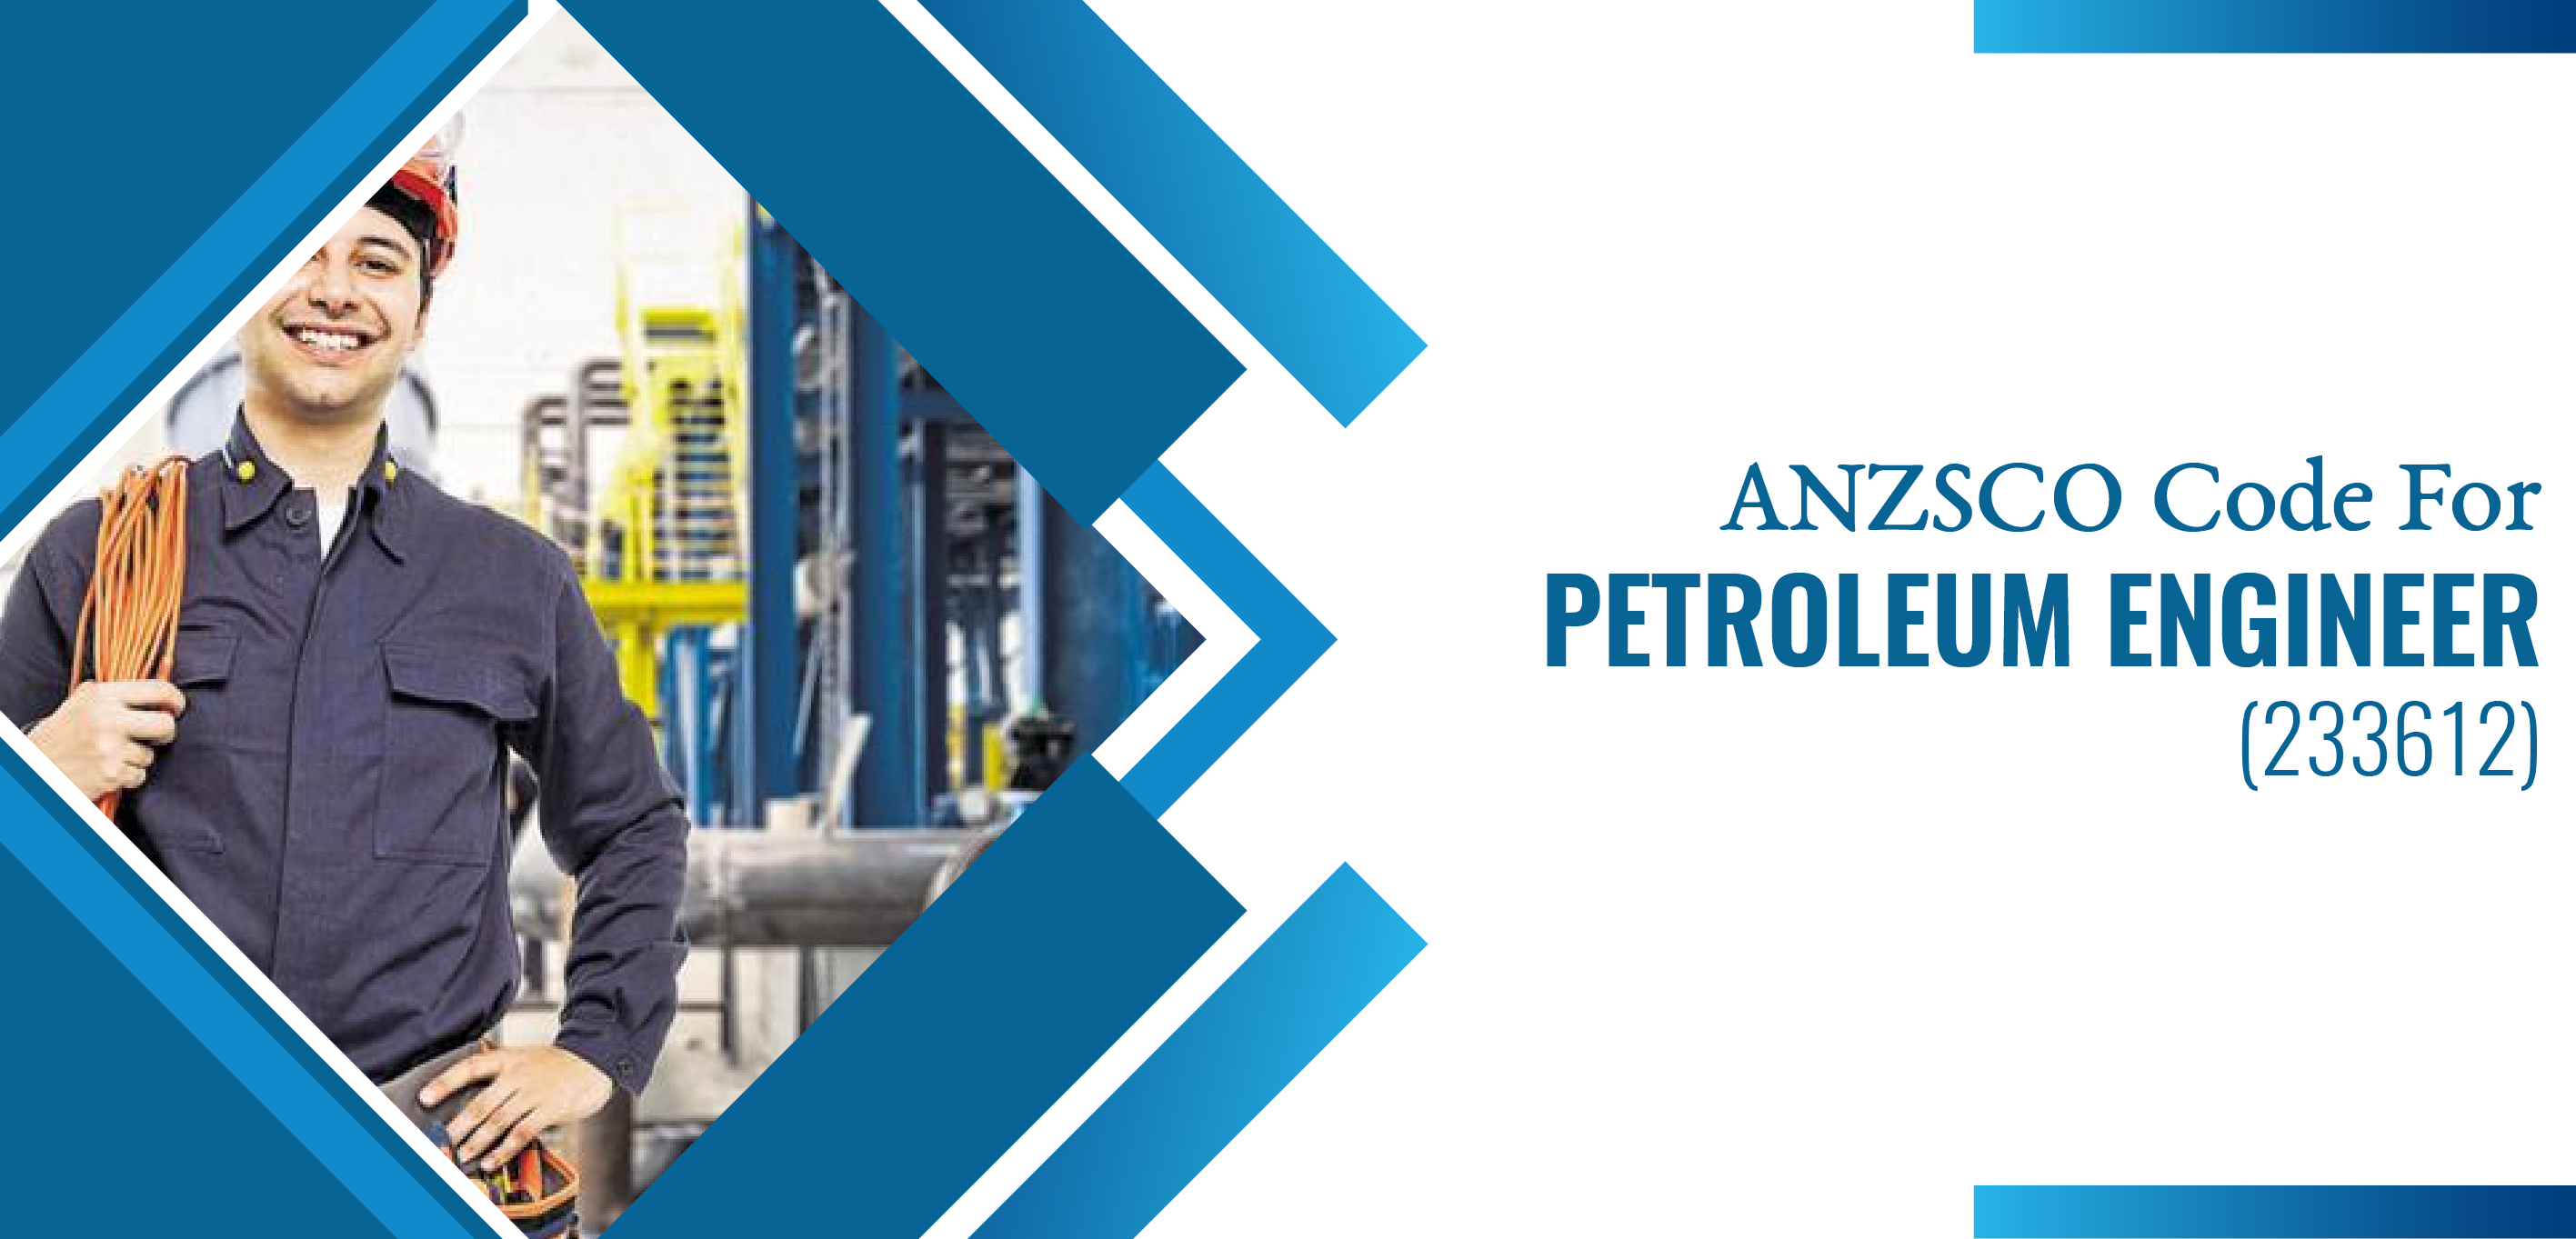 ANZSCO Code for Petroleum Engineer